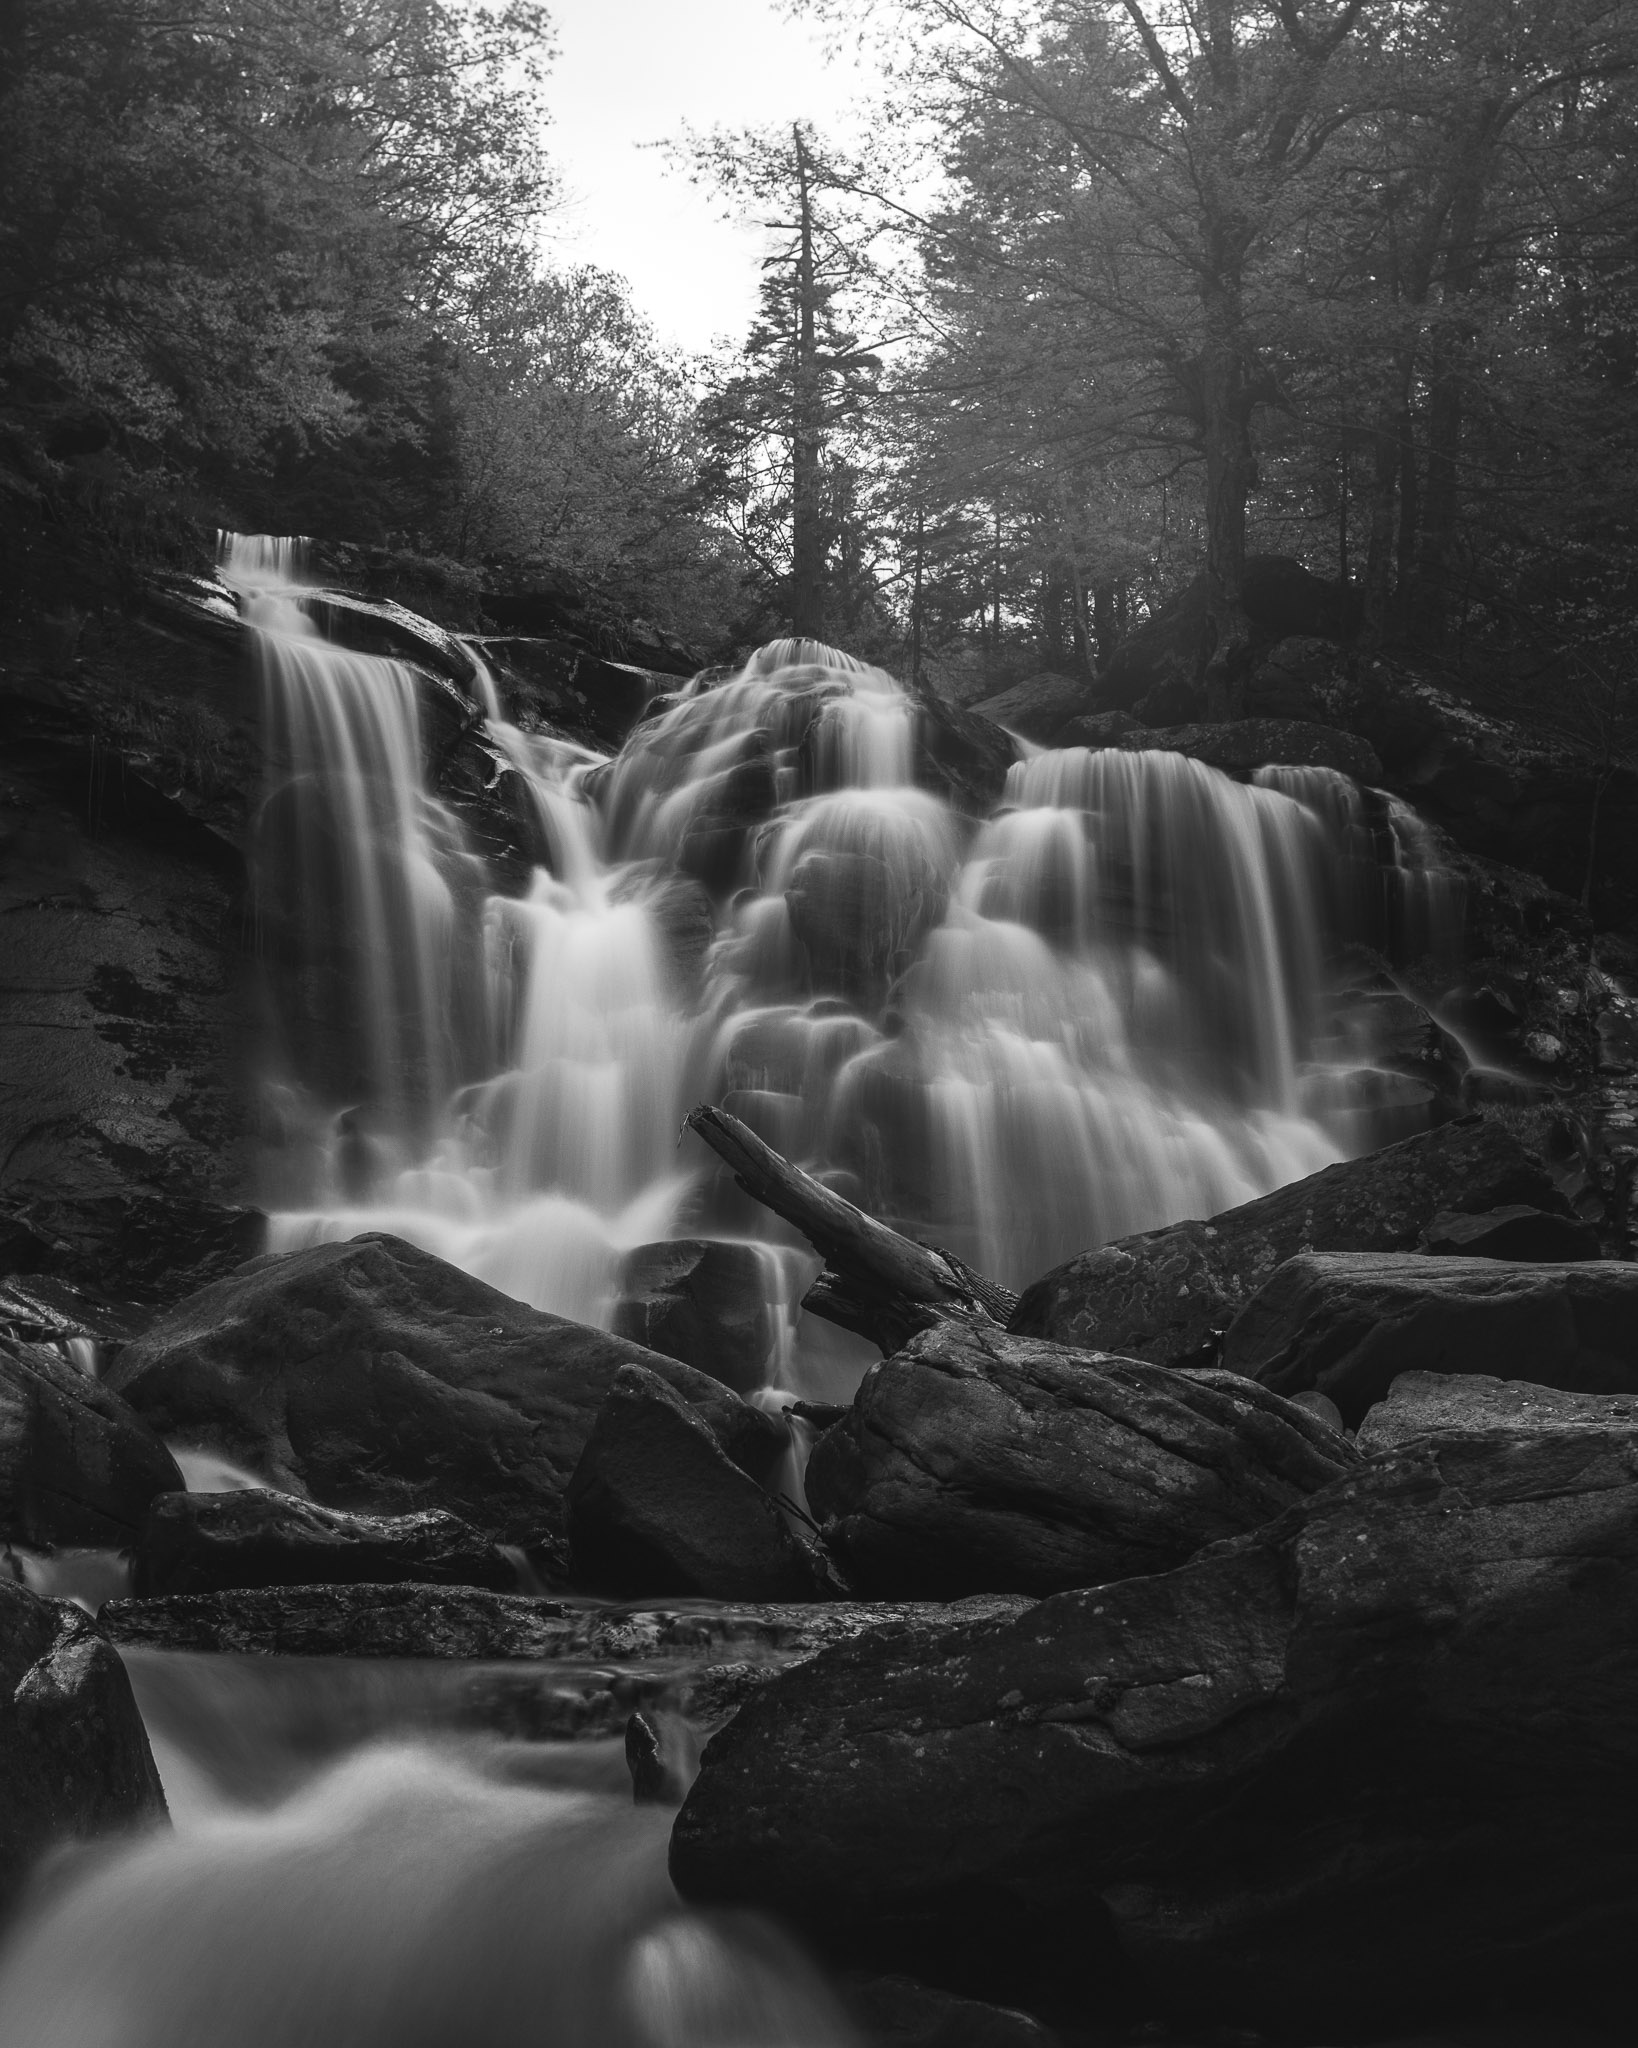 A black and white photograph of Bastion Falls in New York, created by fine artist Cody Schultz of Pennsylvania. This photograph has very strong foreground elements that help to guide the viewer's eyes towards the main subject, the waterfall. The rocks and lone tree branch in the foreground are pin-sharp and filled with a multitude of micro-contrasts that help to pop them off the screen/paper. Bastion Falls itself points the viewer up to a tree, standing tall, that looks down upon the viewer as if it is challenging them.